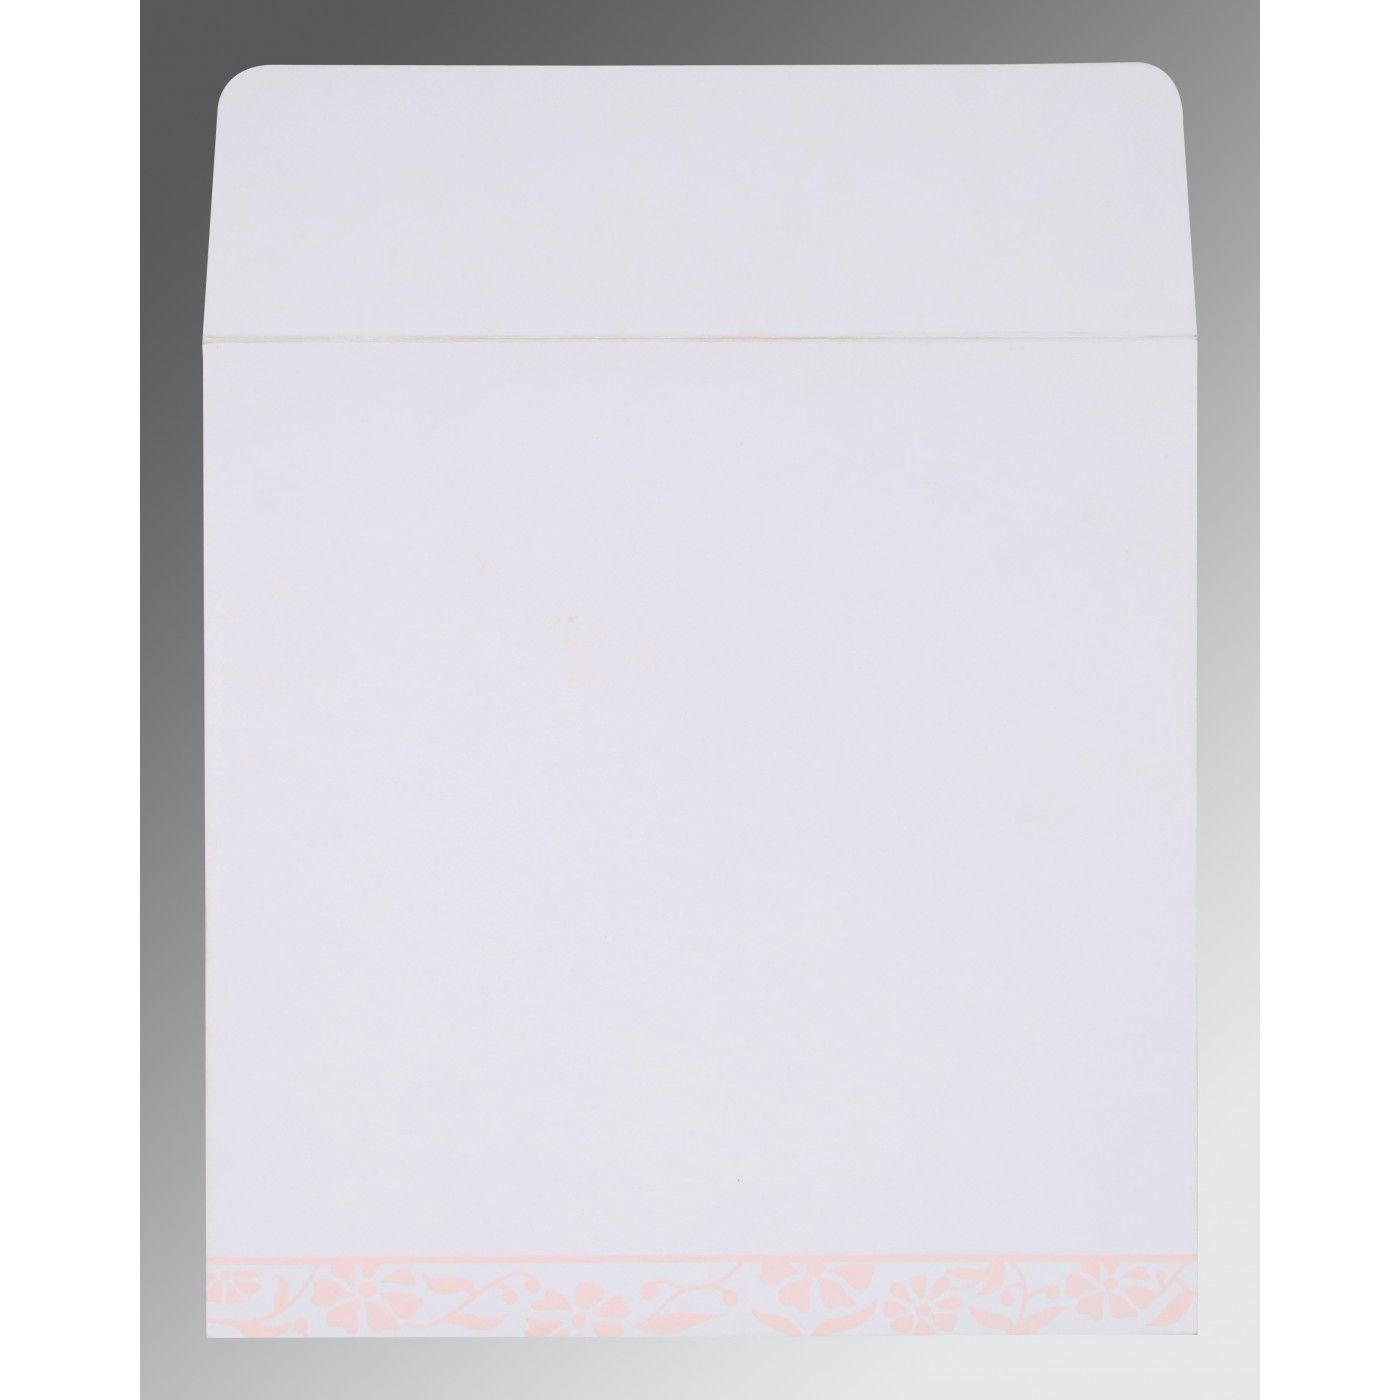 OFF-WHITE MATTE FLORAL THEMED - SCREEN PRINTED WEDDING CARD : CS-8222N - IndianWeddingCards